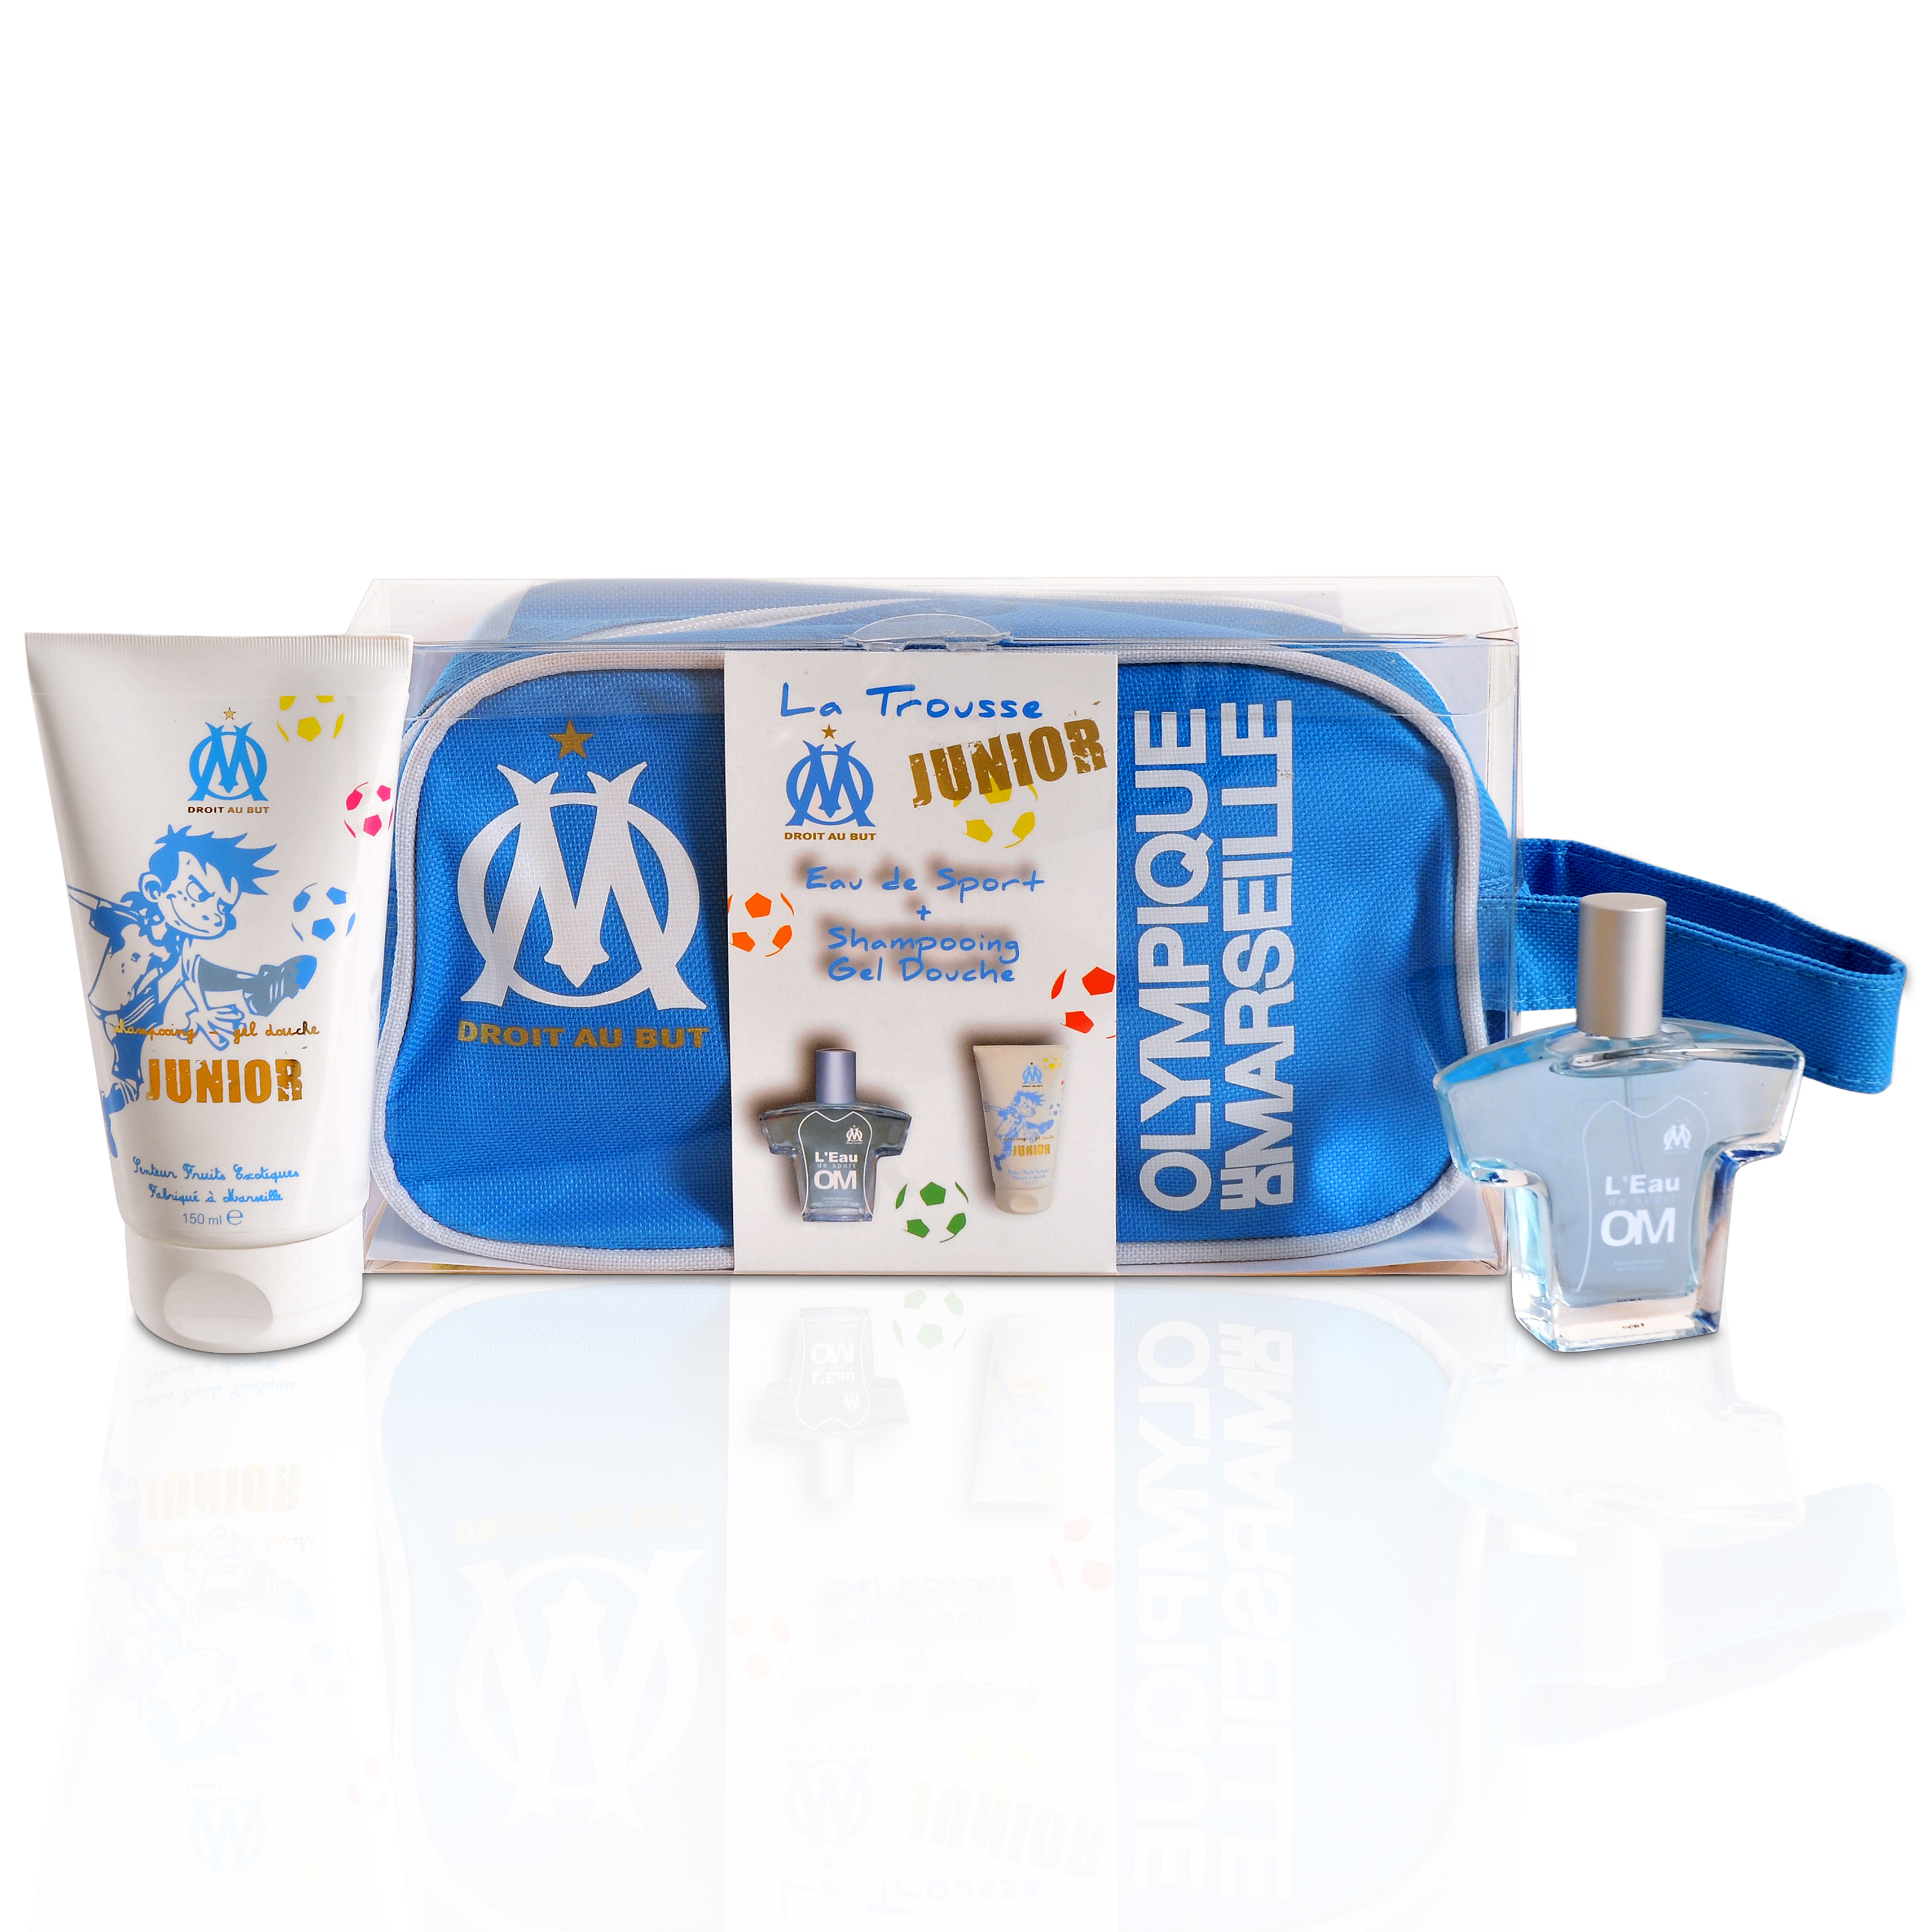 Olympique de Marseille Junior Washbag Gift Set